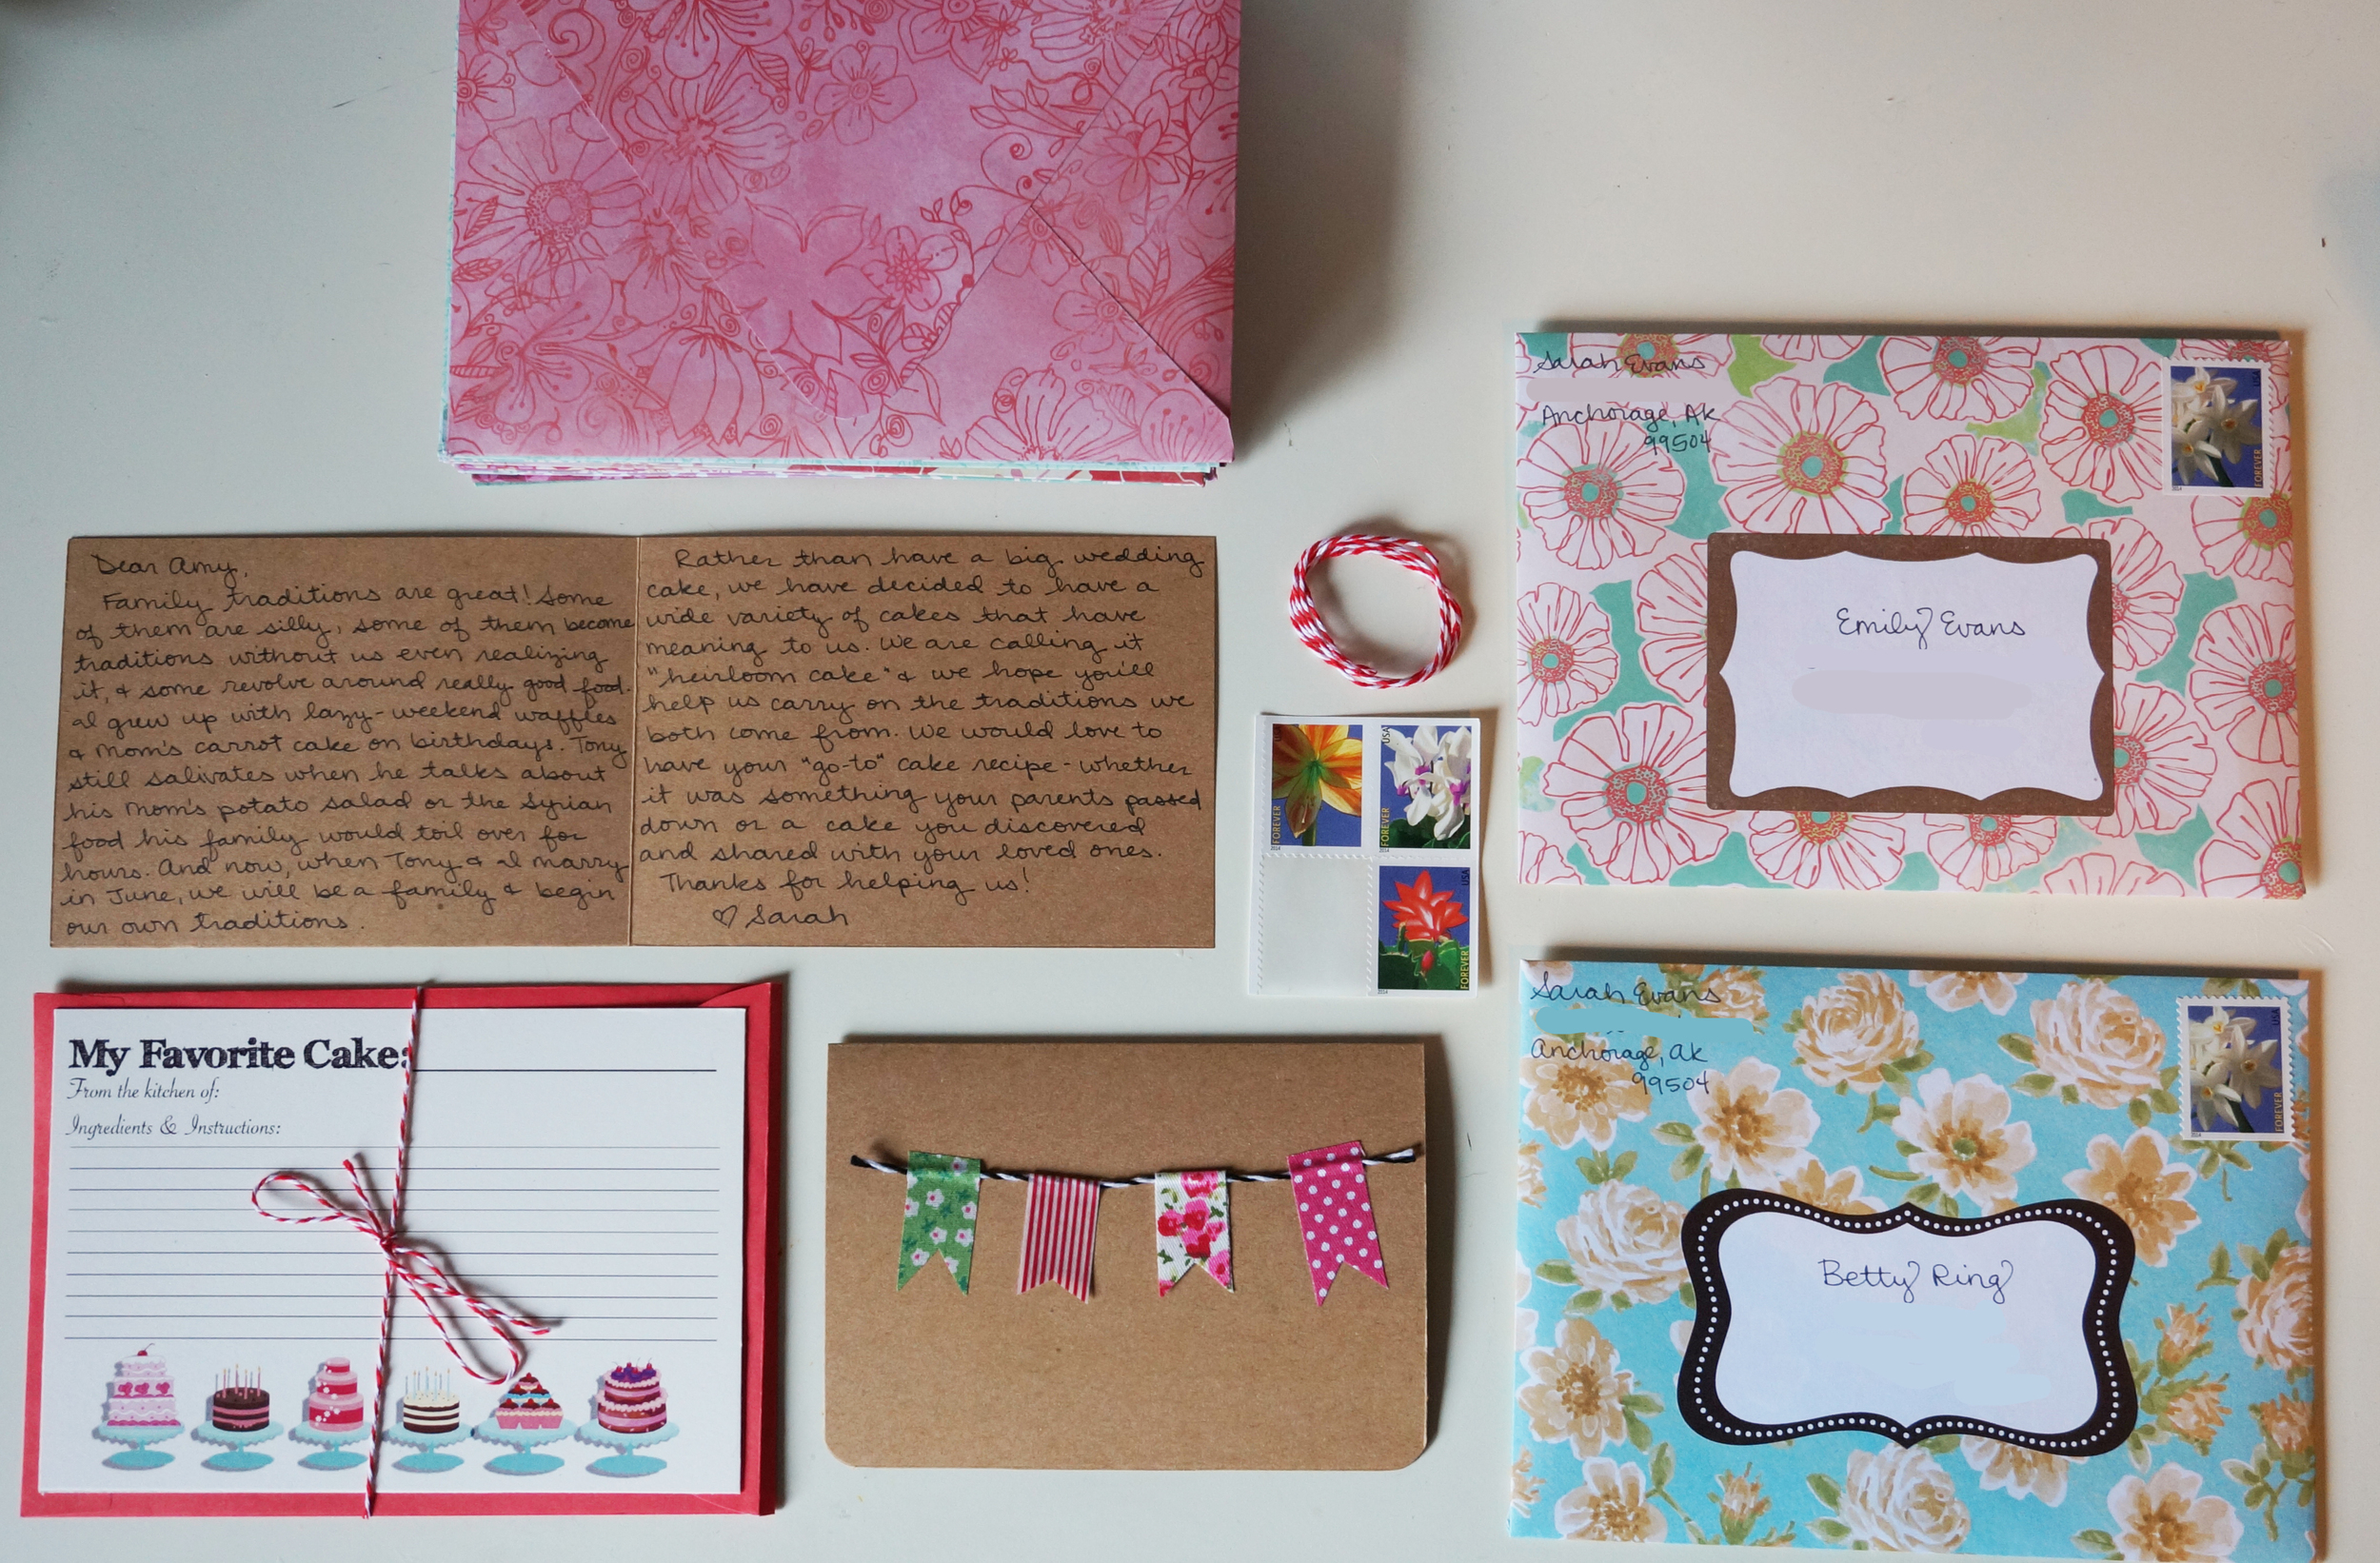 All handmade cards using supplies on hand: homemade envelopes made from scrapbook paper, bunting cards made with cardstock, baker's twine, and washi tape, and recipe card designed in Photoshop and printed at Kinko's for 10 dollars.